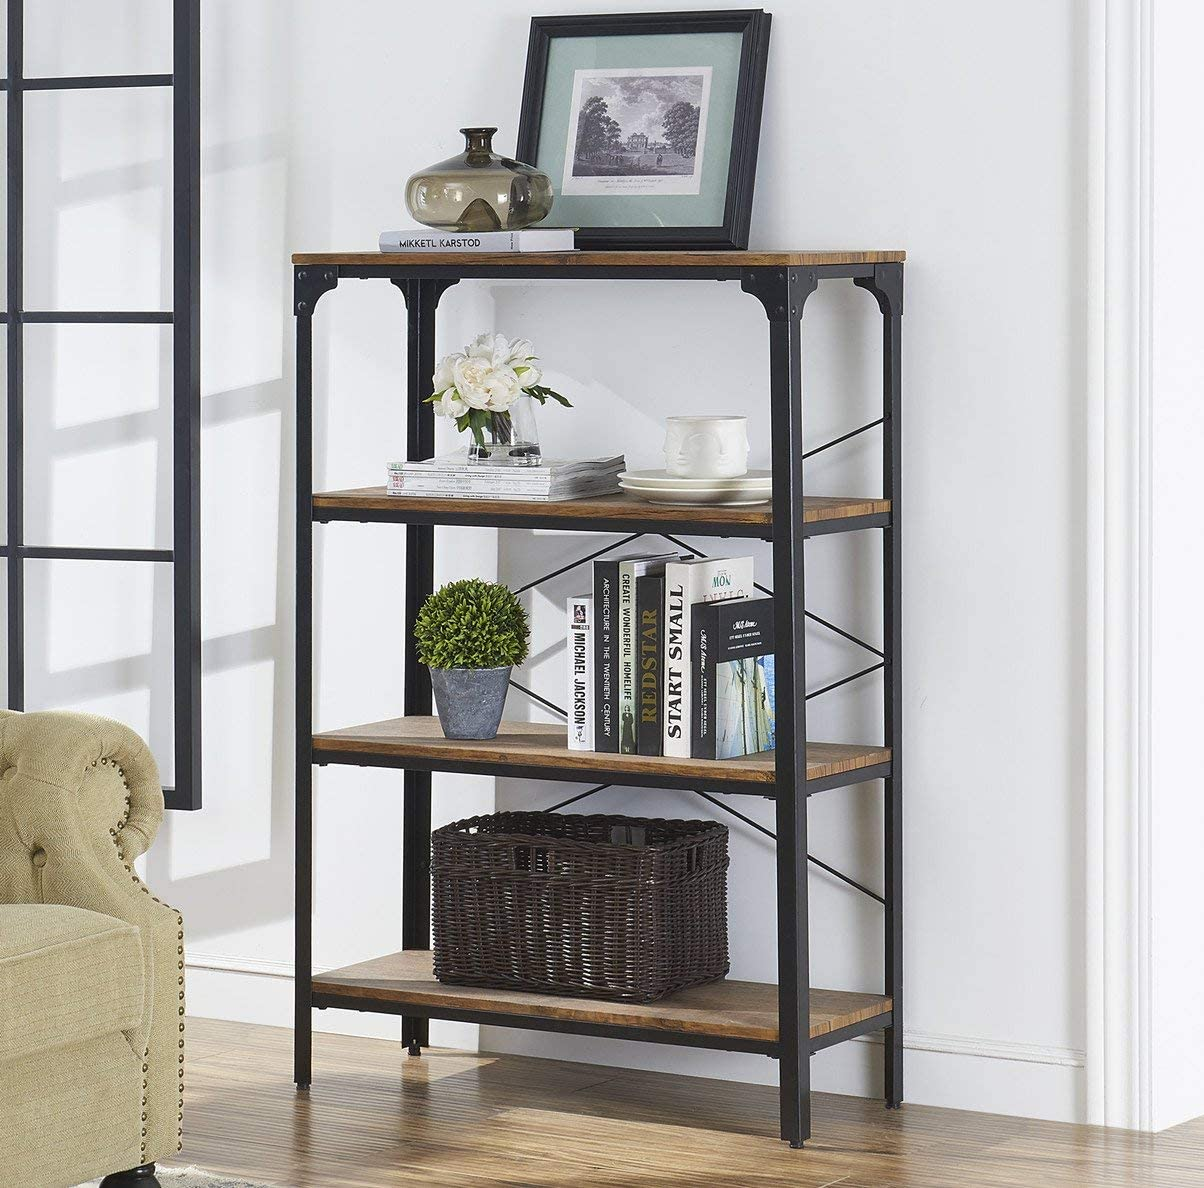 O K FURNITURE 4-Shelf Industrial Vintage Bookcase, Metal Bookshelf, 48 H x 33 W x 13 D, Barn-Wood Finish